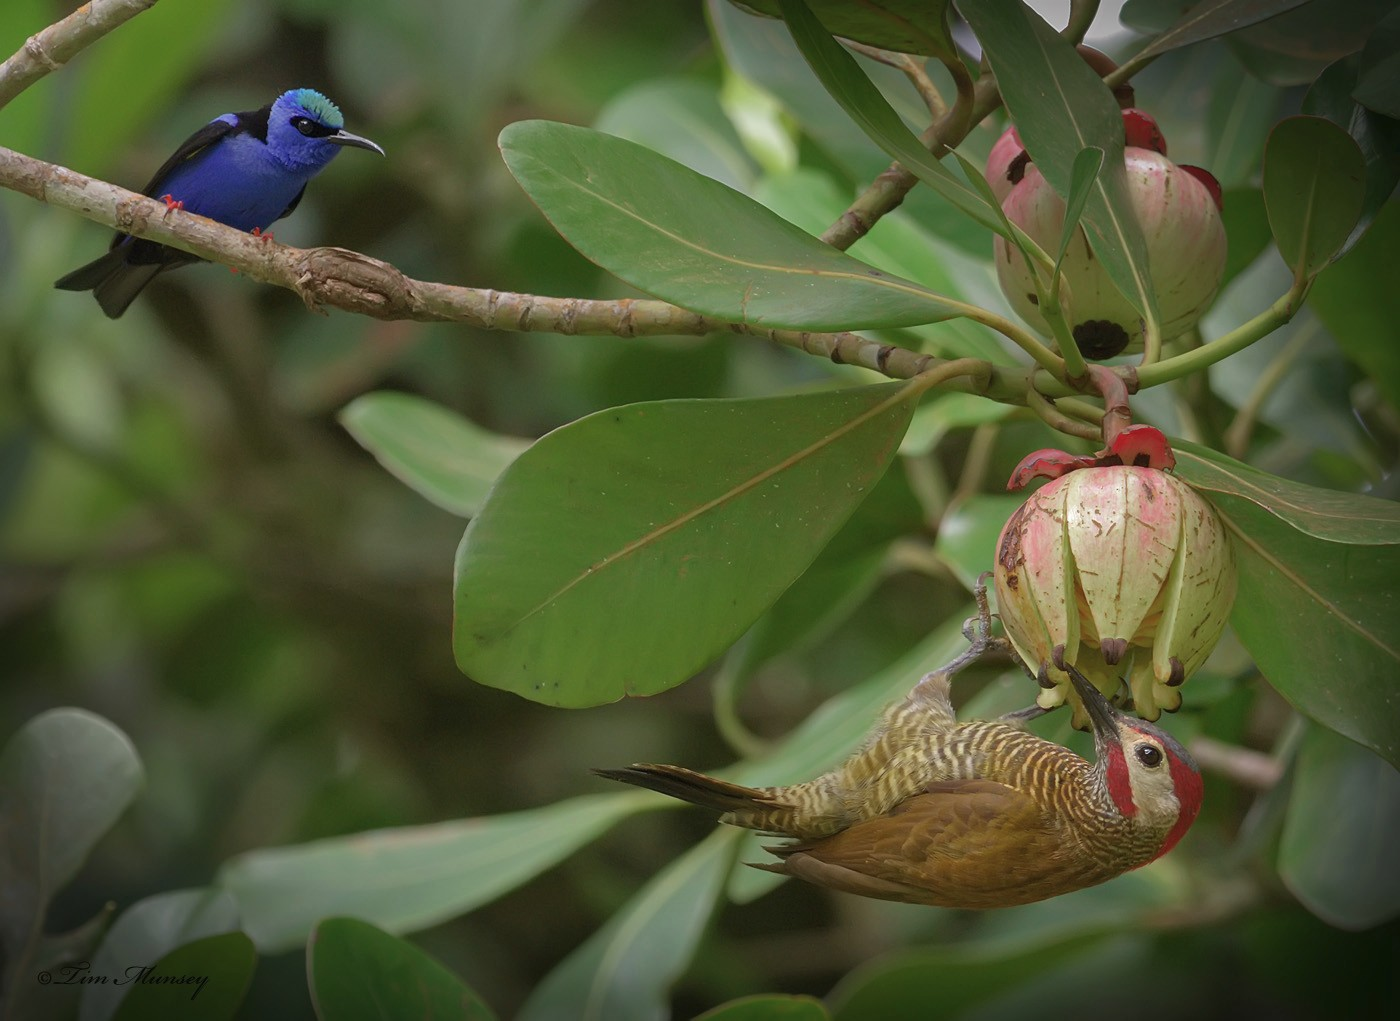 Golden-olive Woopecker and Red-legged Honeycreeper